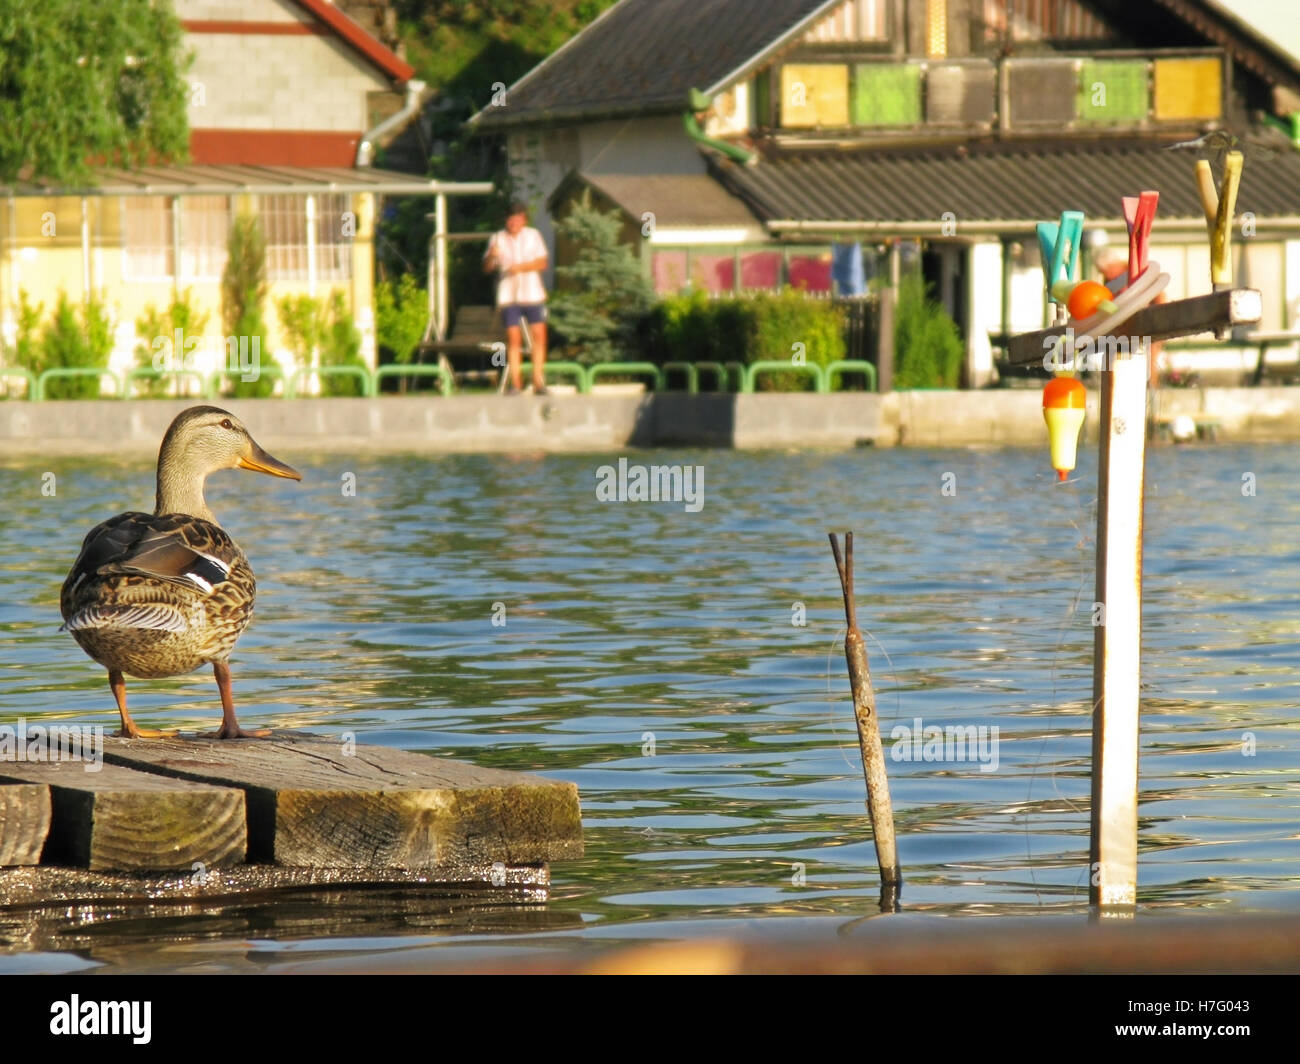 Fishing pier with duck and tackles - Stock Image